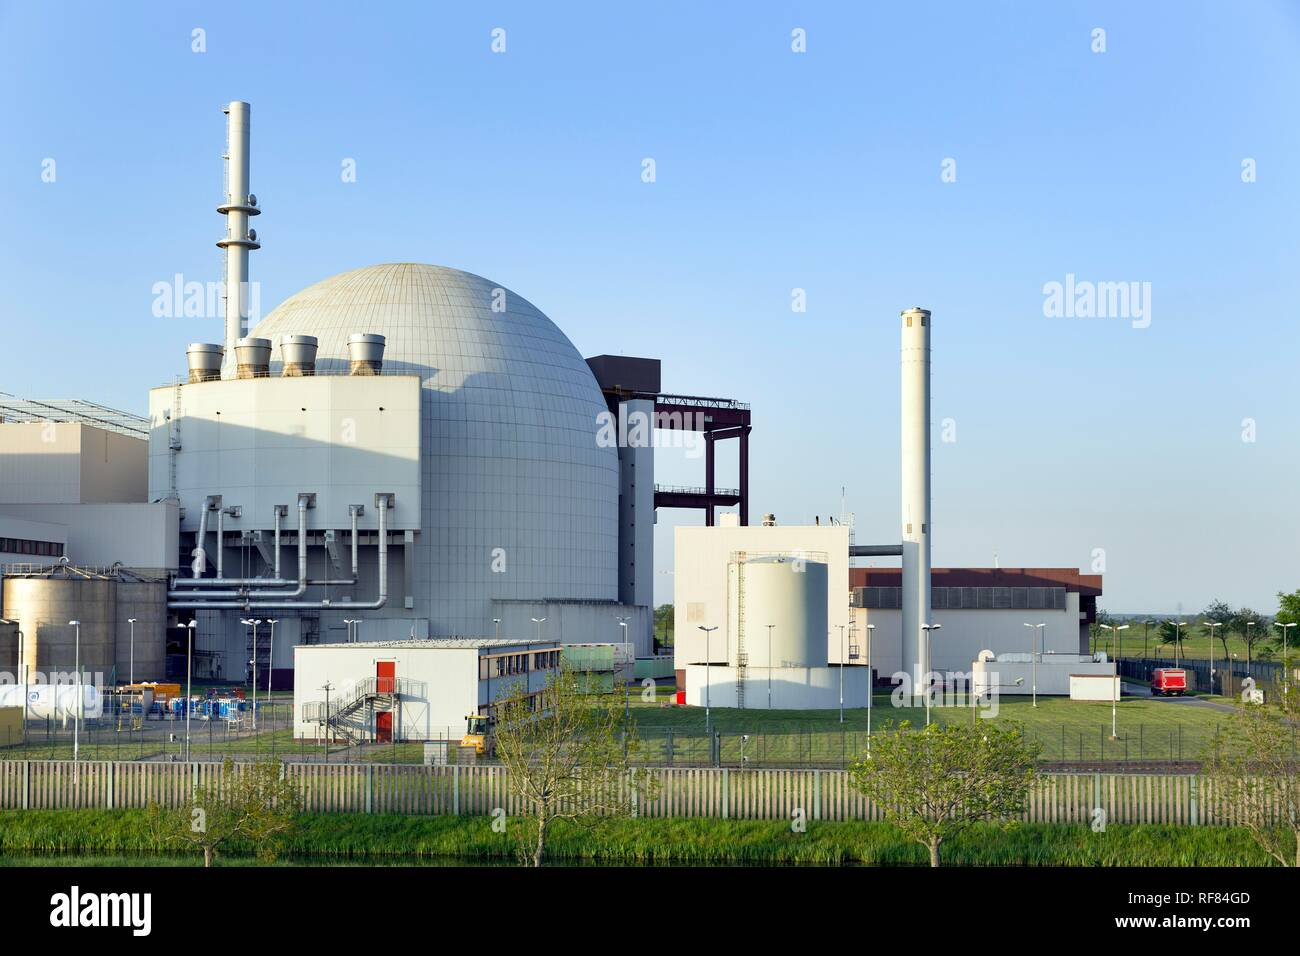 Brokdorf nuclear power plant, Brokdorf, district of Steinburg, Schleswig-Holstein, Germany - Stock Image